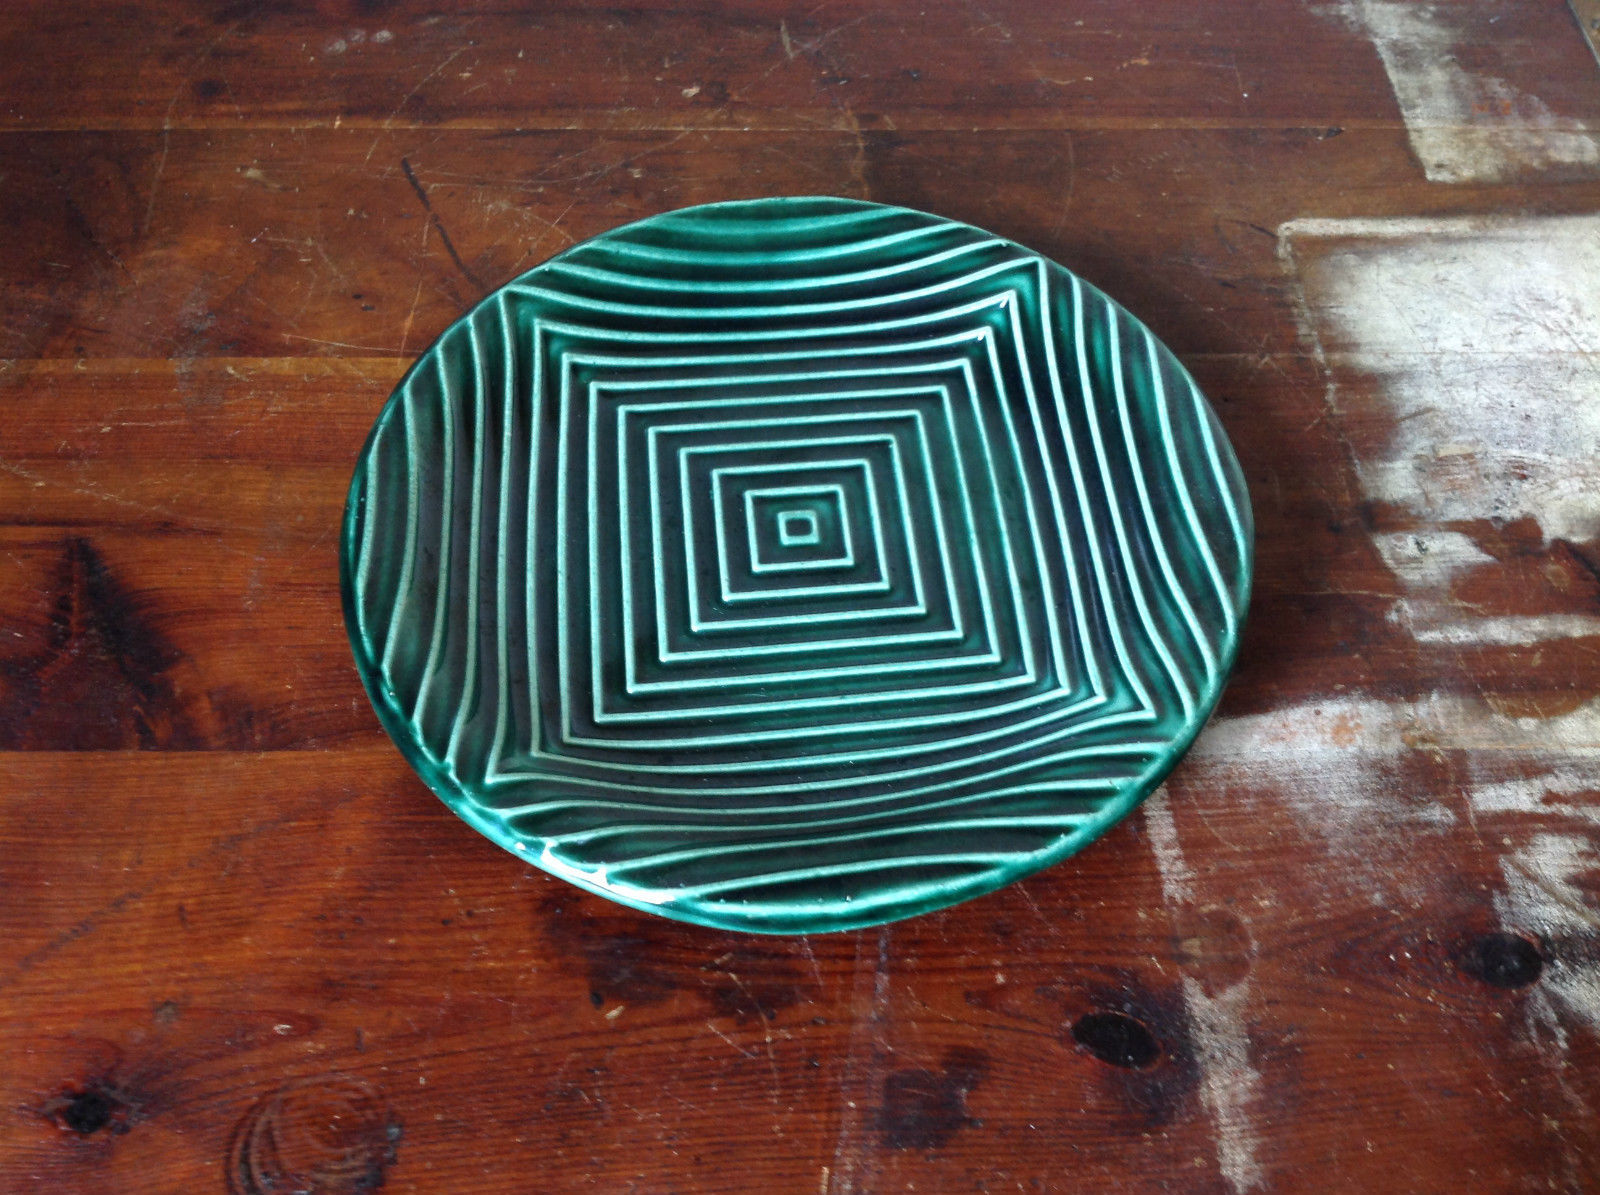 Green Ceramic Artisan Handcrafted Plate Saucer Relief Square Pattern